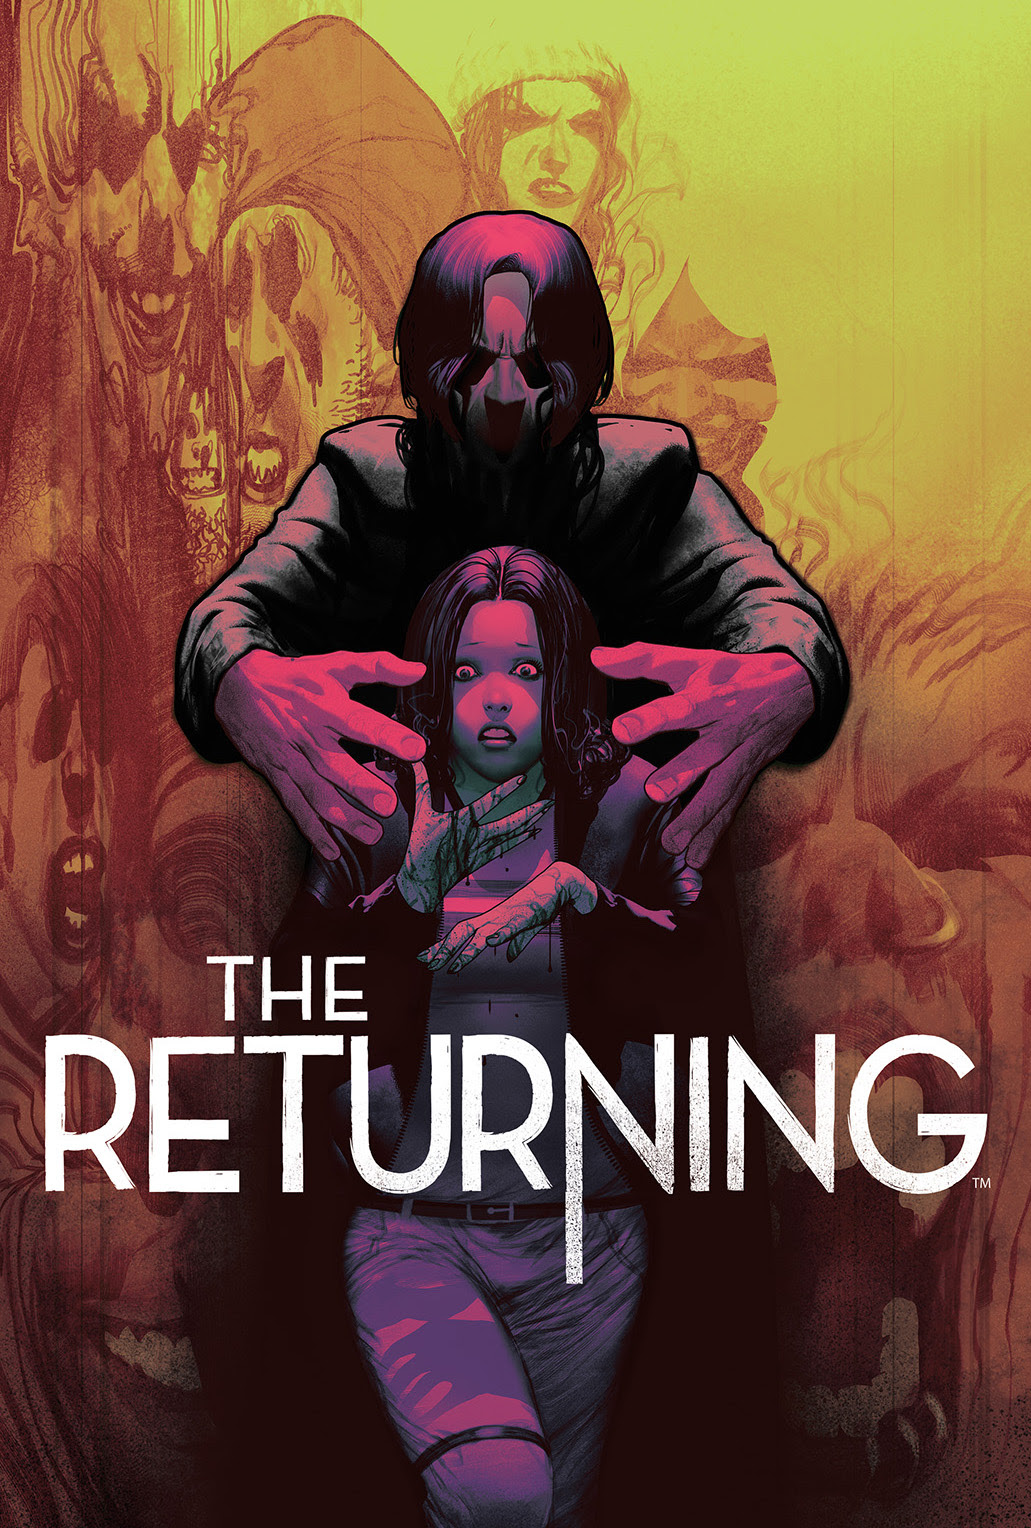 The Returning #2